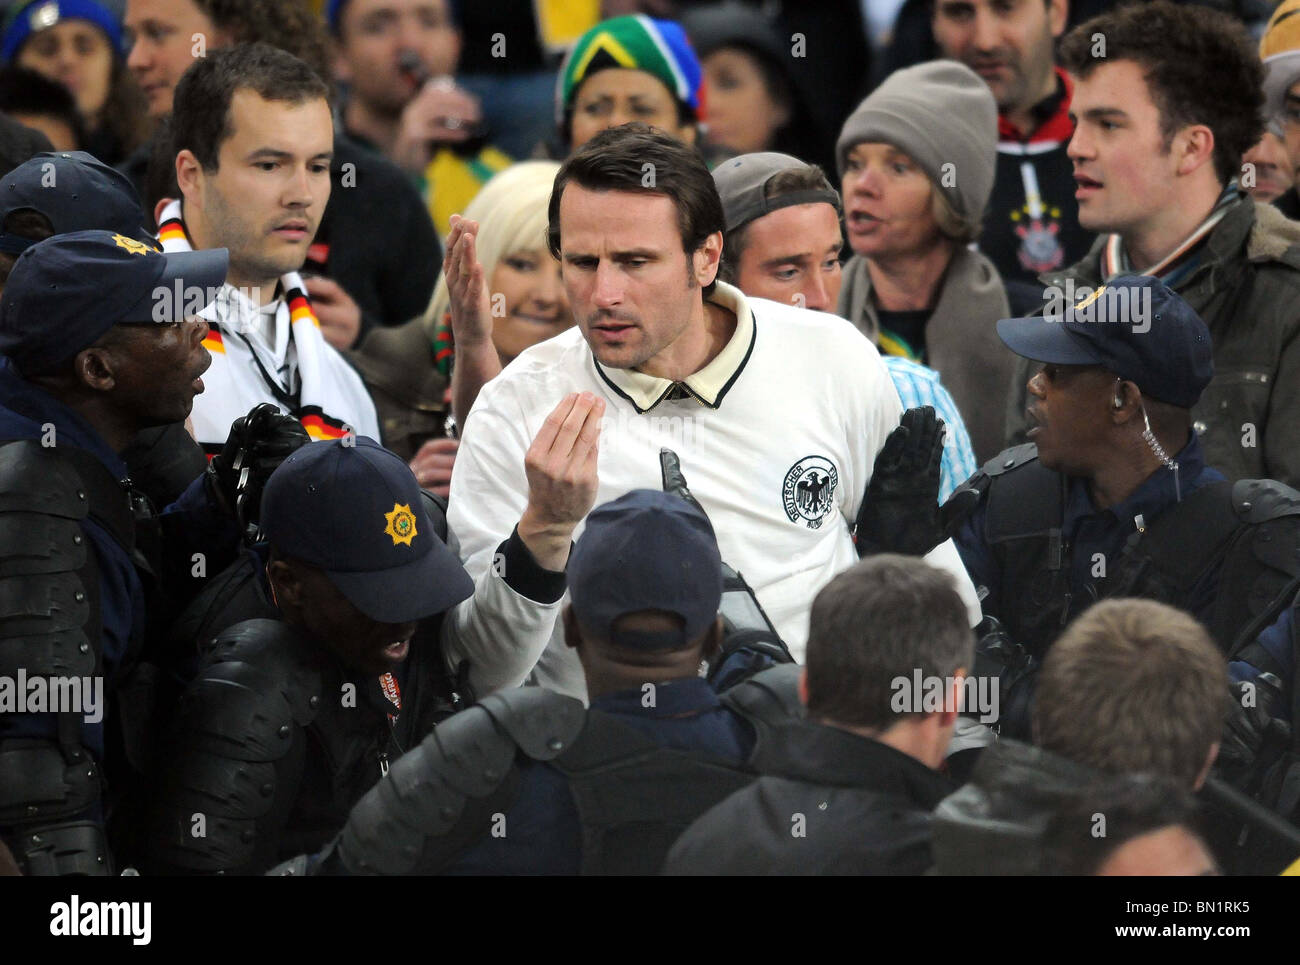 GERMAN FAN CLASHES WITH SOUTH GHANA V GERMANY SOCCER CITY  SOUTH AFRICA 23 June 2010 - Stock Image